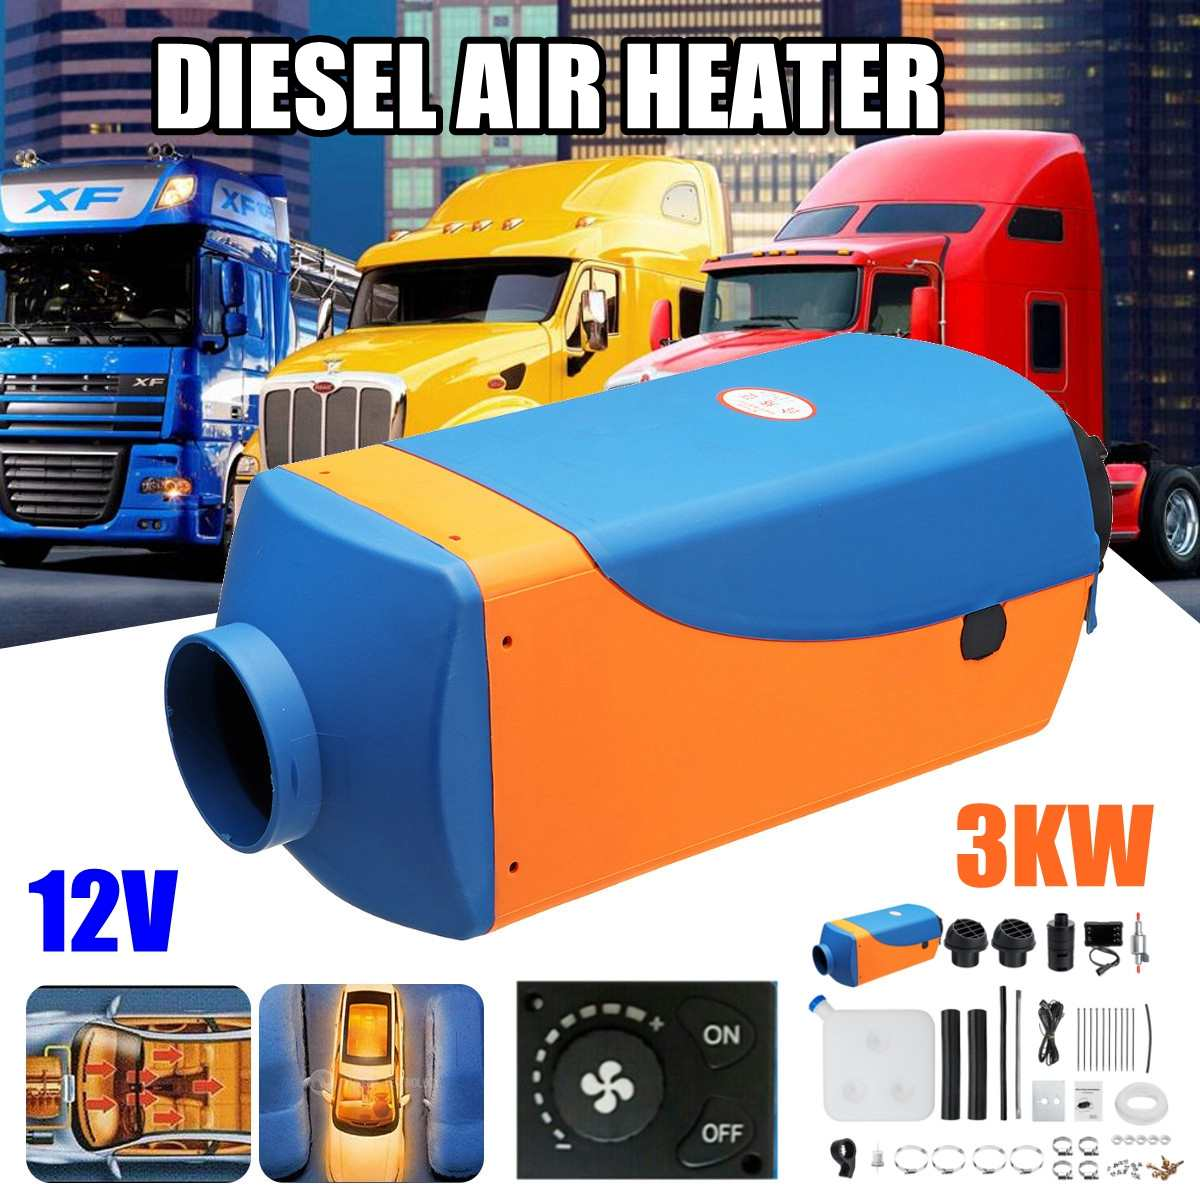 3KW diesels Air Heater Planar 3000W 12V For Motorhome Trucks Boats Bus  Knob Switch Car Heater with 1xSilencer3KW diesels Air Heater Planar 3000W 12V For Motorhome Trucks Boats Bus  Knob Switch Car Heater with 1xSilencer